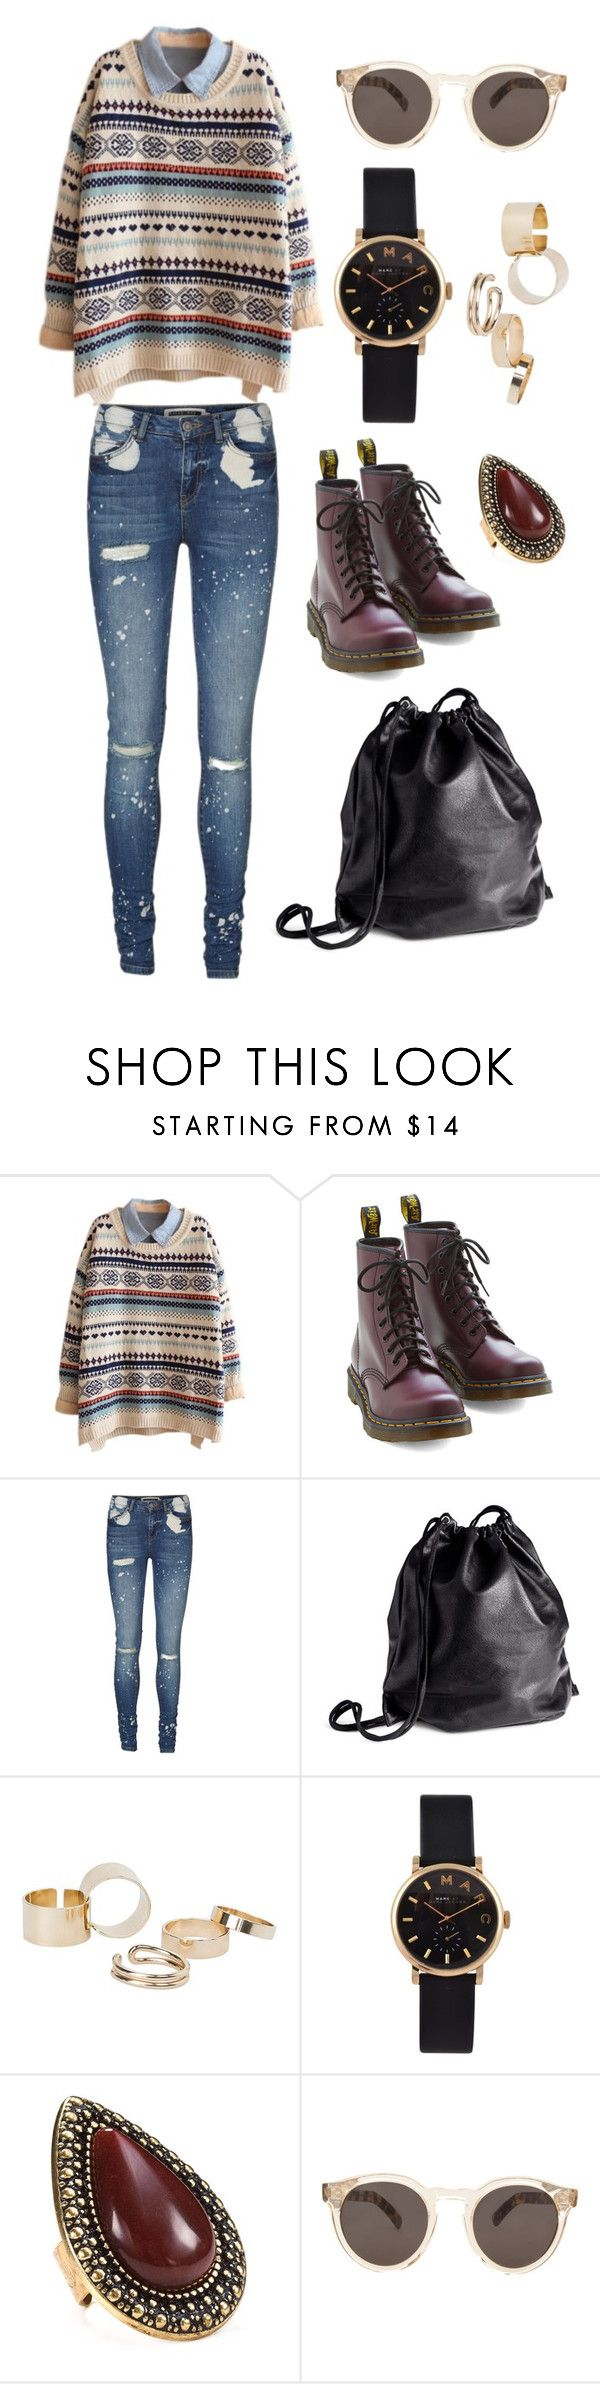 """""""Geek mode on"""" by liquidvisions ❤ liked on Polyvore featuring Dr. Martens, Vero Moda, H&M, MANGO, Marc by Marc Jacobs, Samantha Wills, Illesteva, women's clothing, women and female"""